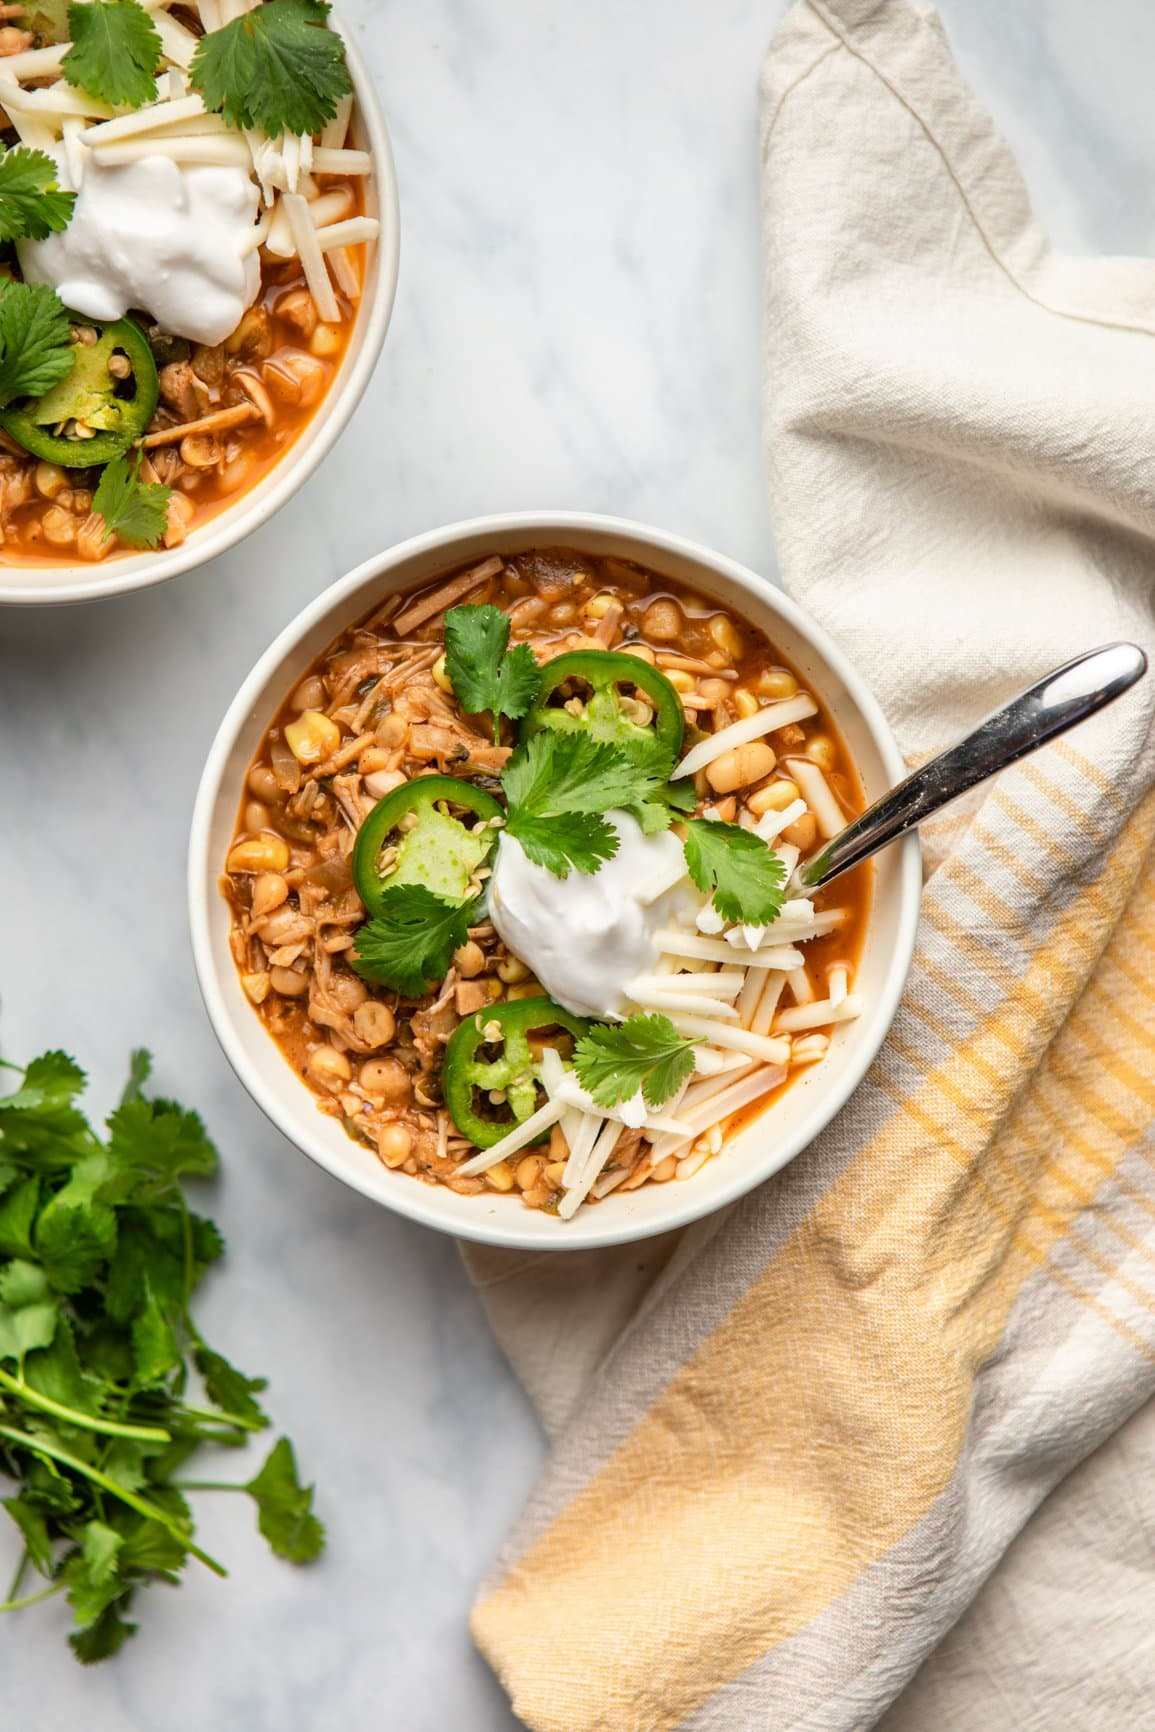 two bowls of vegan white bean chili topped with jalapeno, cilantro, and vegan cheese